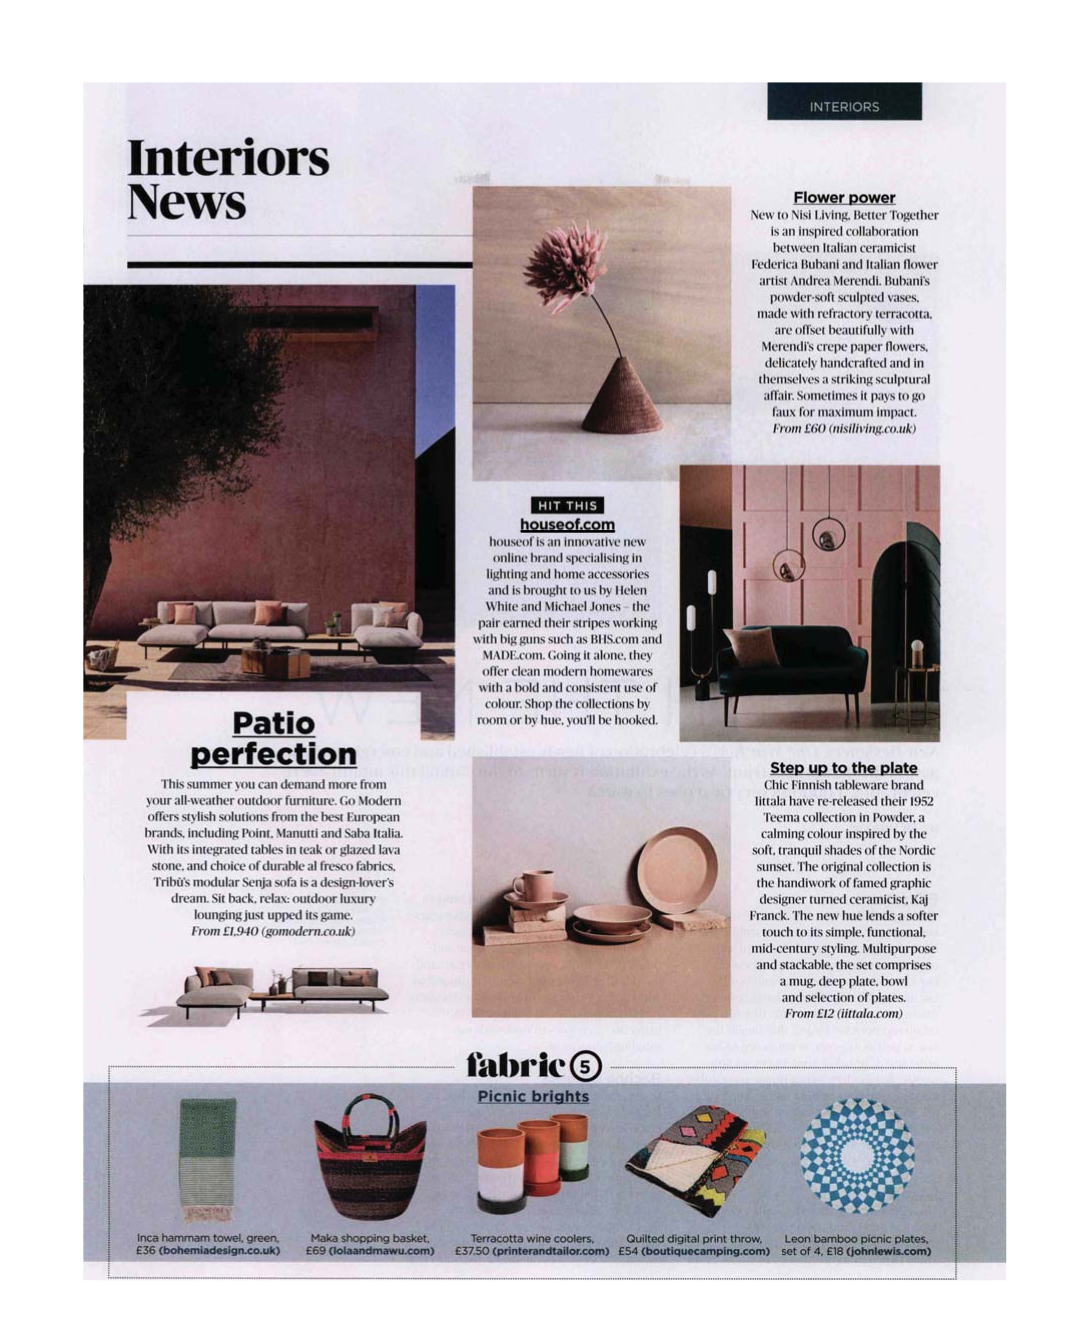 pressarticle-fabricmagazine-houseof-new-contemporary-brand